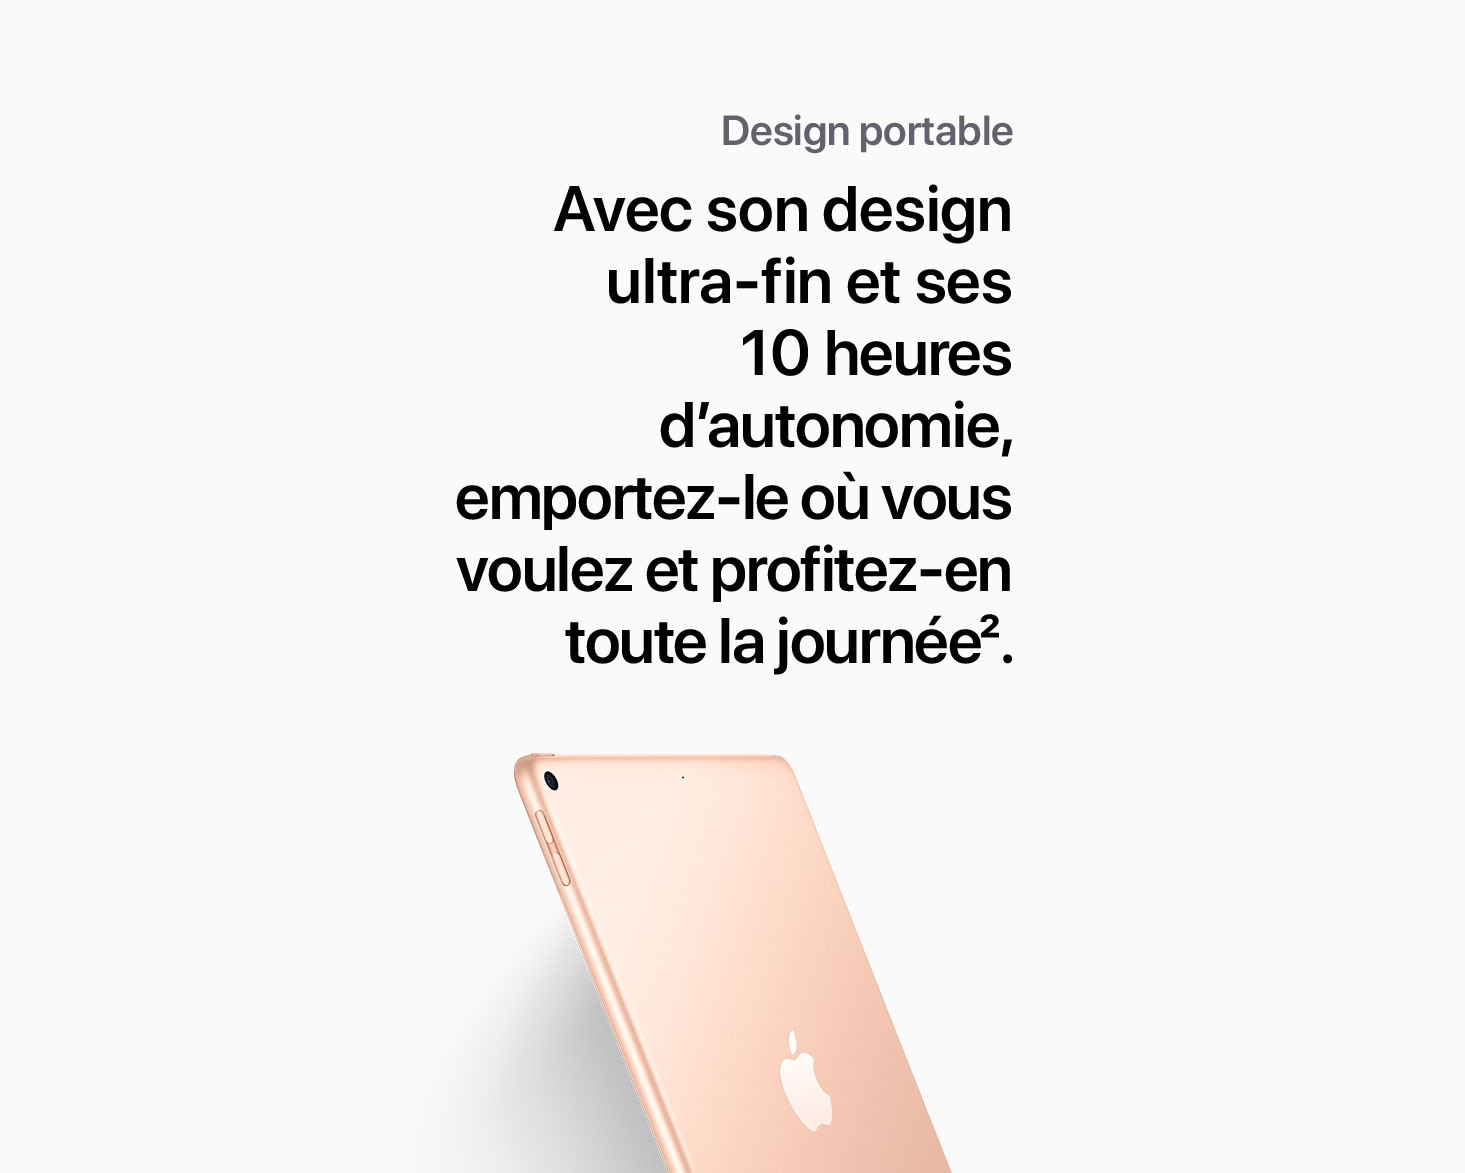 Productpage---iPad-Air-2019-fr-mobile_06.jpg